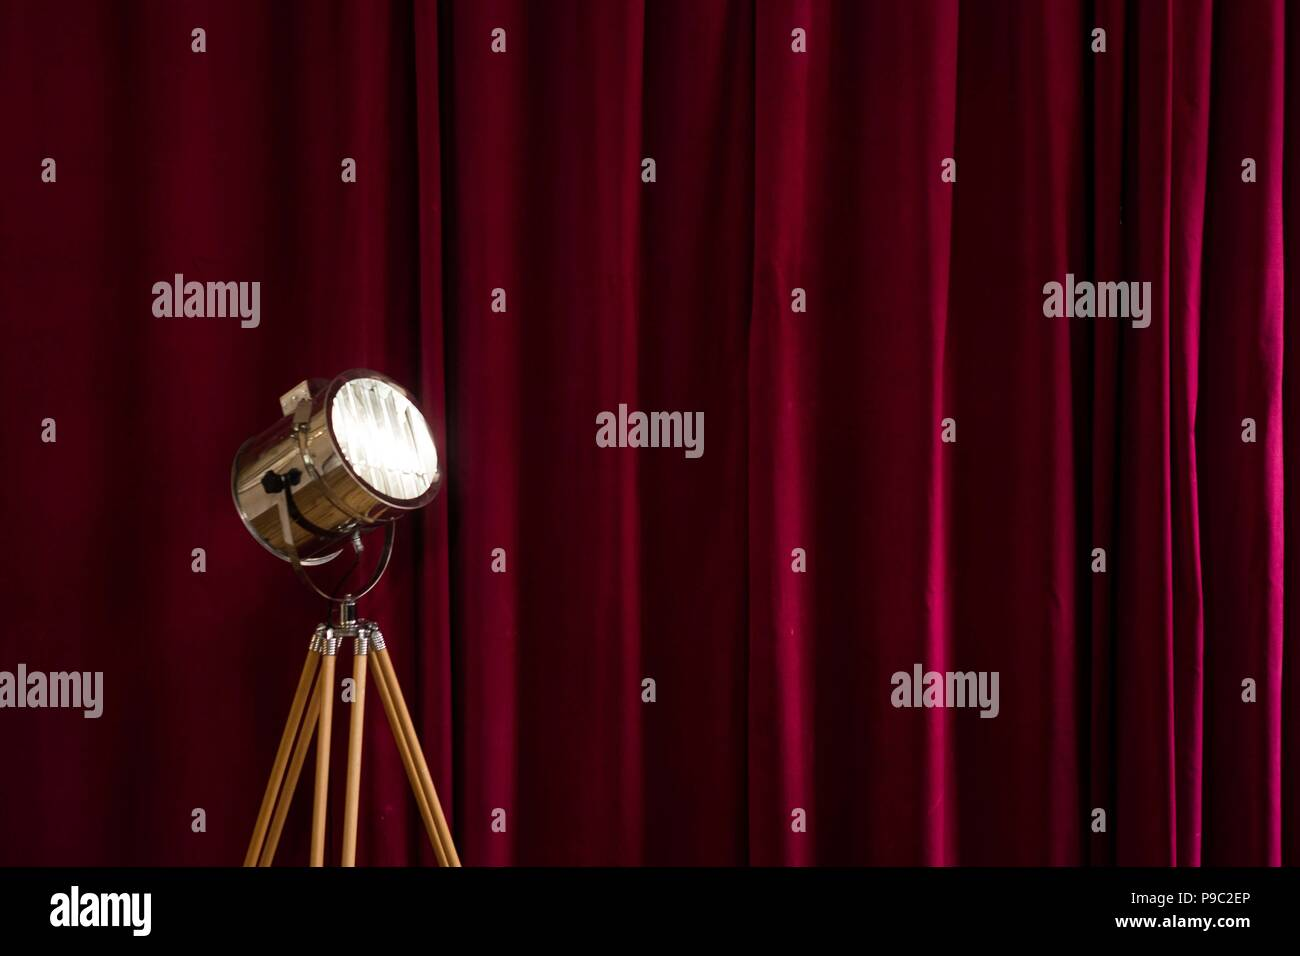 Retro studio light with a red velvet curtain background - Stock Image